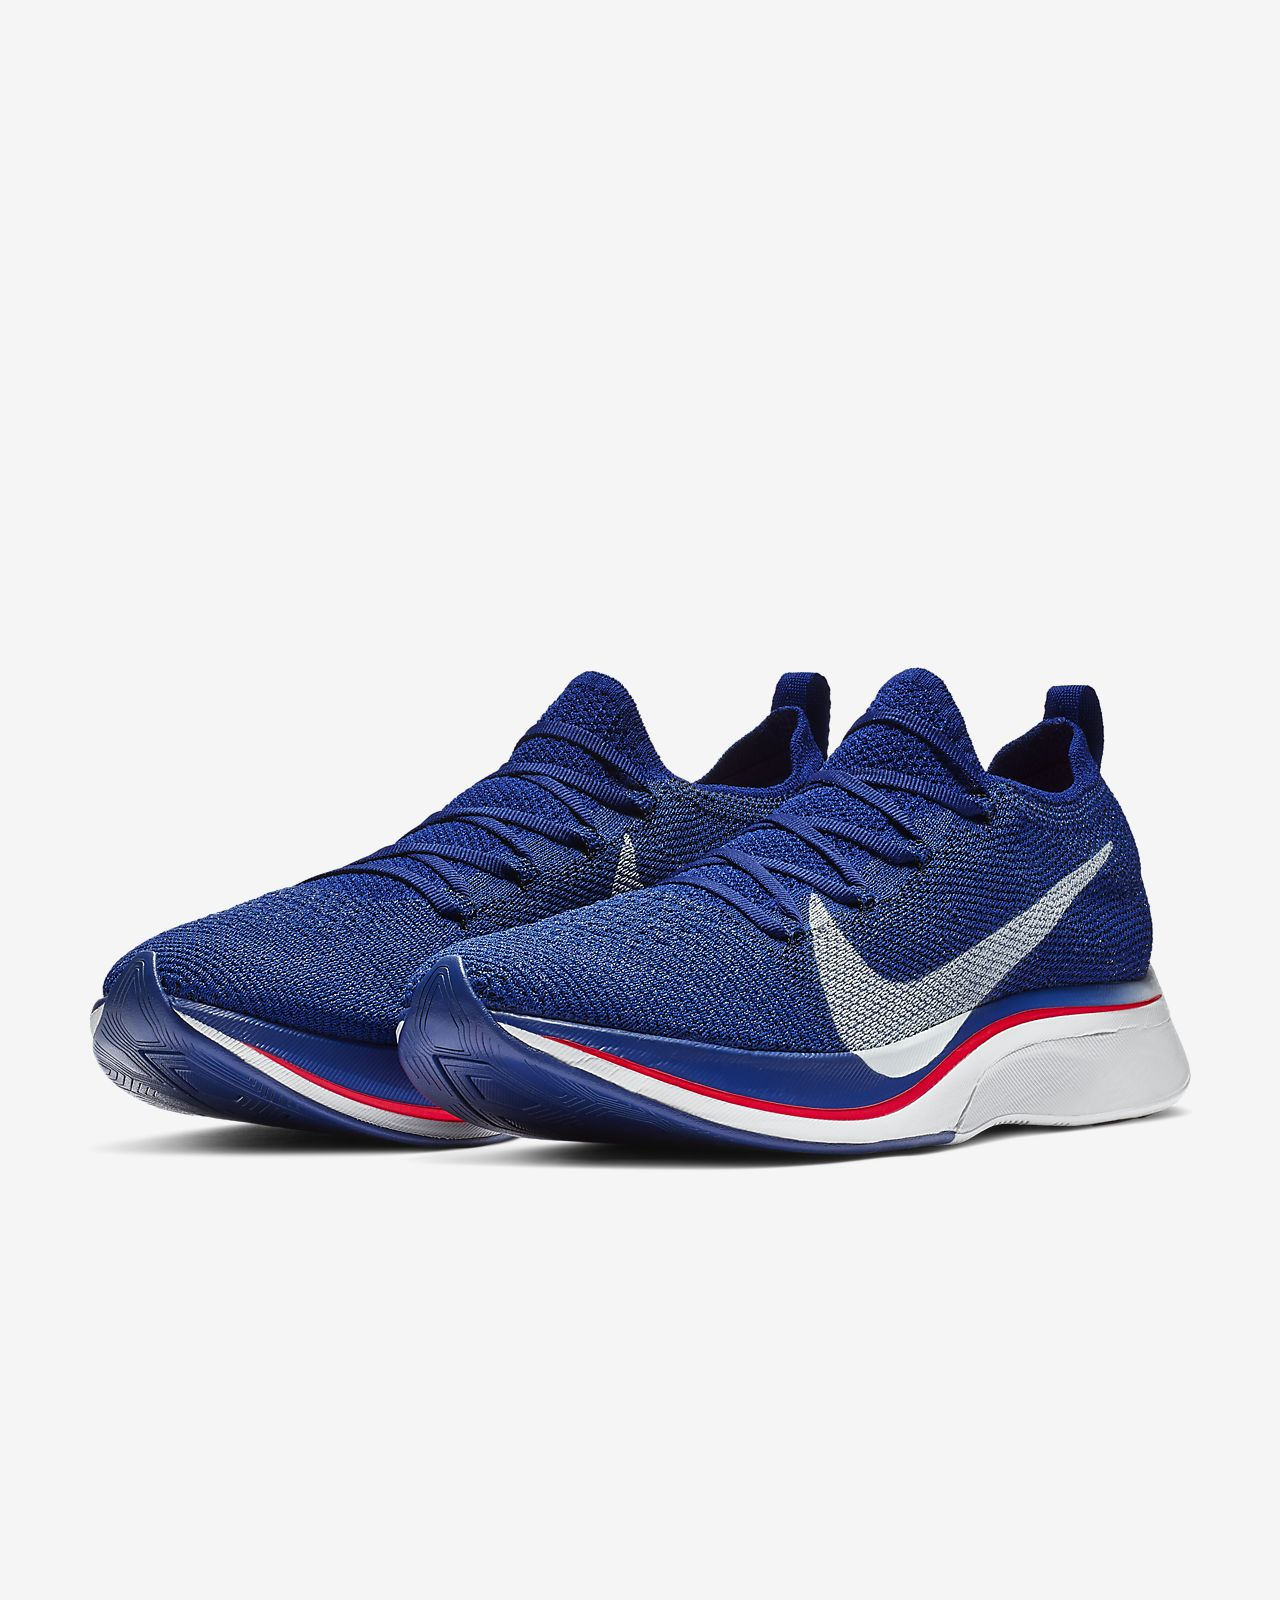 buy online 33e1d 10e0b Low Resolution Nike Vaporfly 4% Flyknit Running Shoe Nike Vaporfly 4% Flyknit  Running Shoe